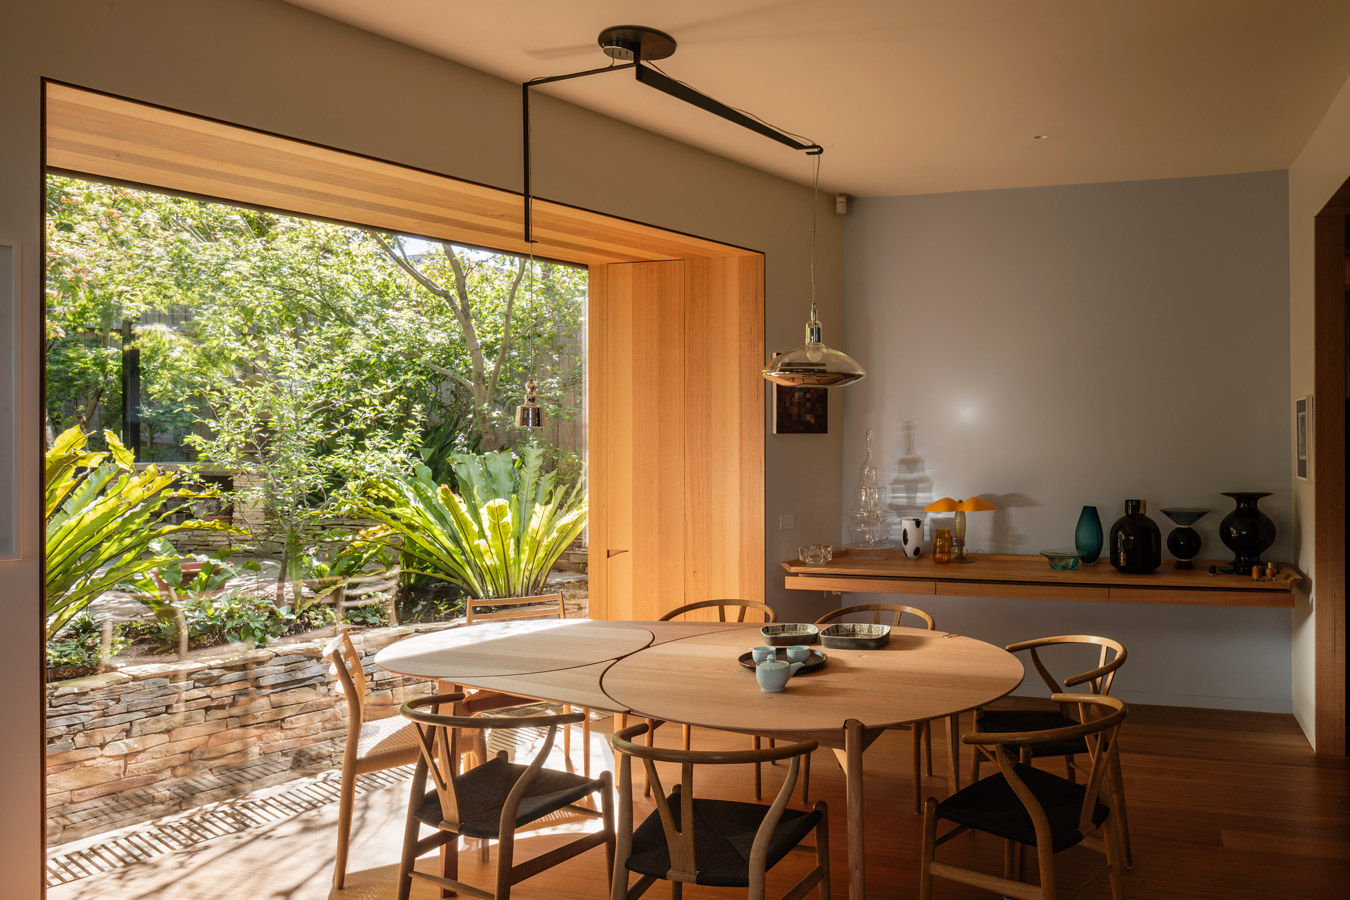 Kew Residence, John Wardle, Overend Constructions, bespoke pendant light, dining area, architectural, design, joinery